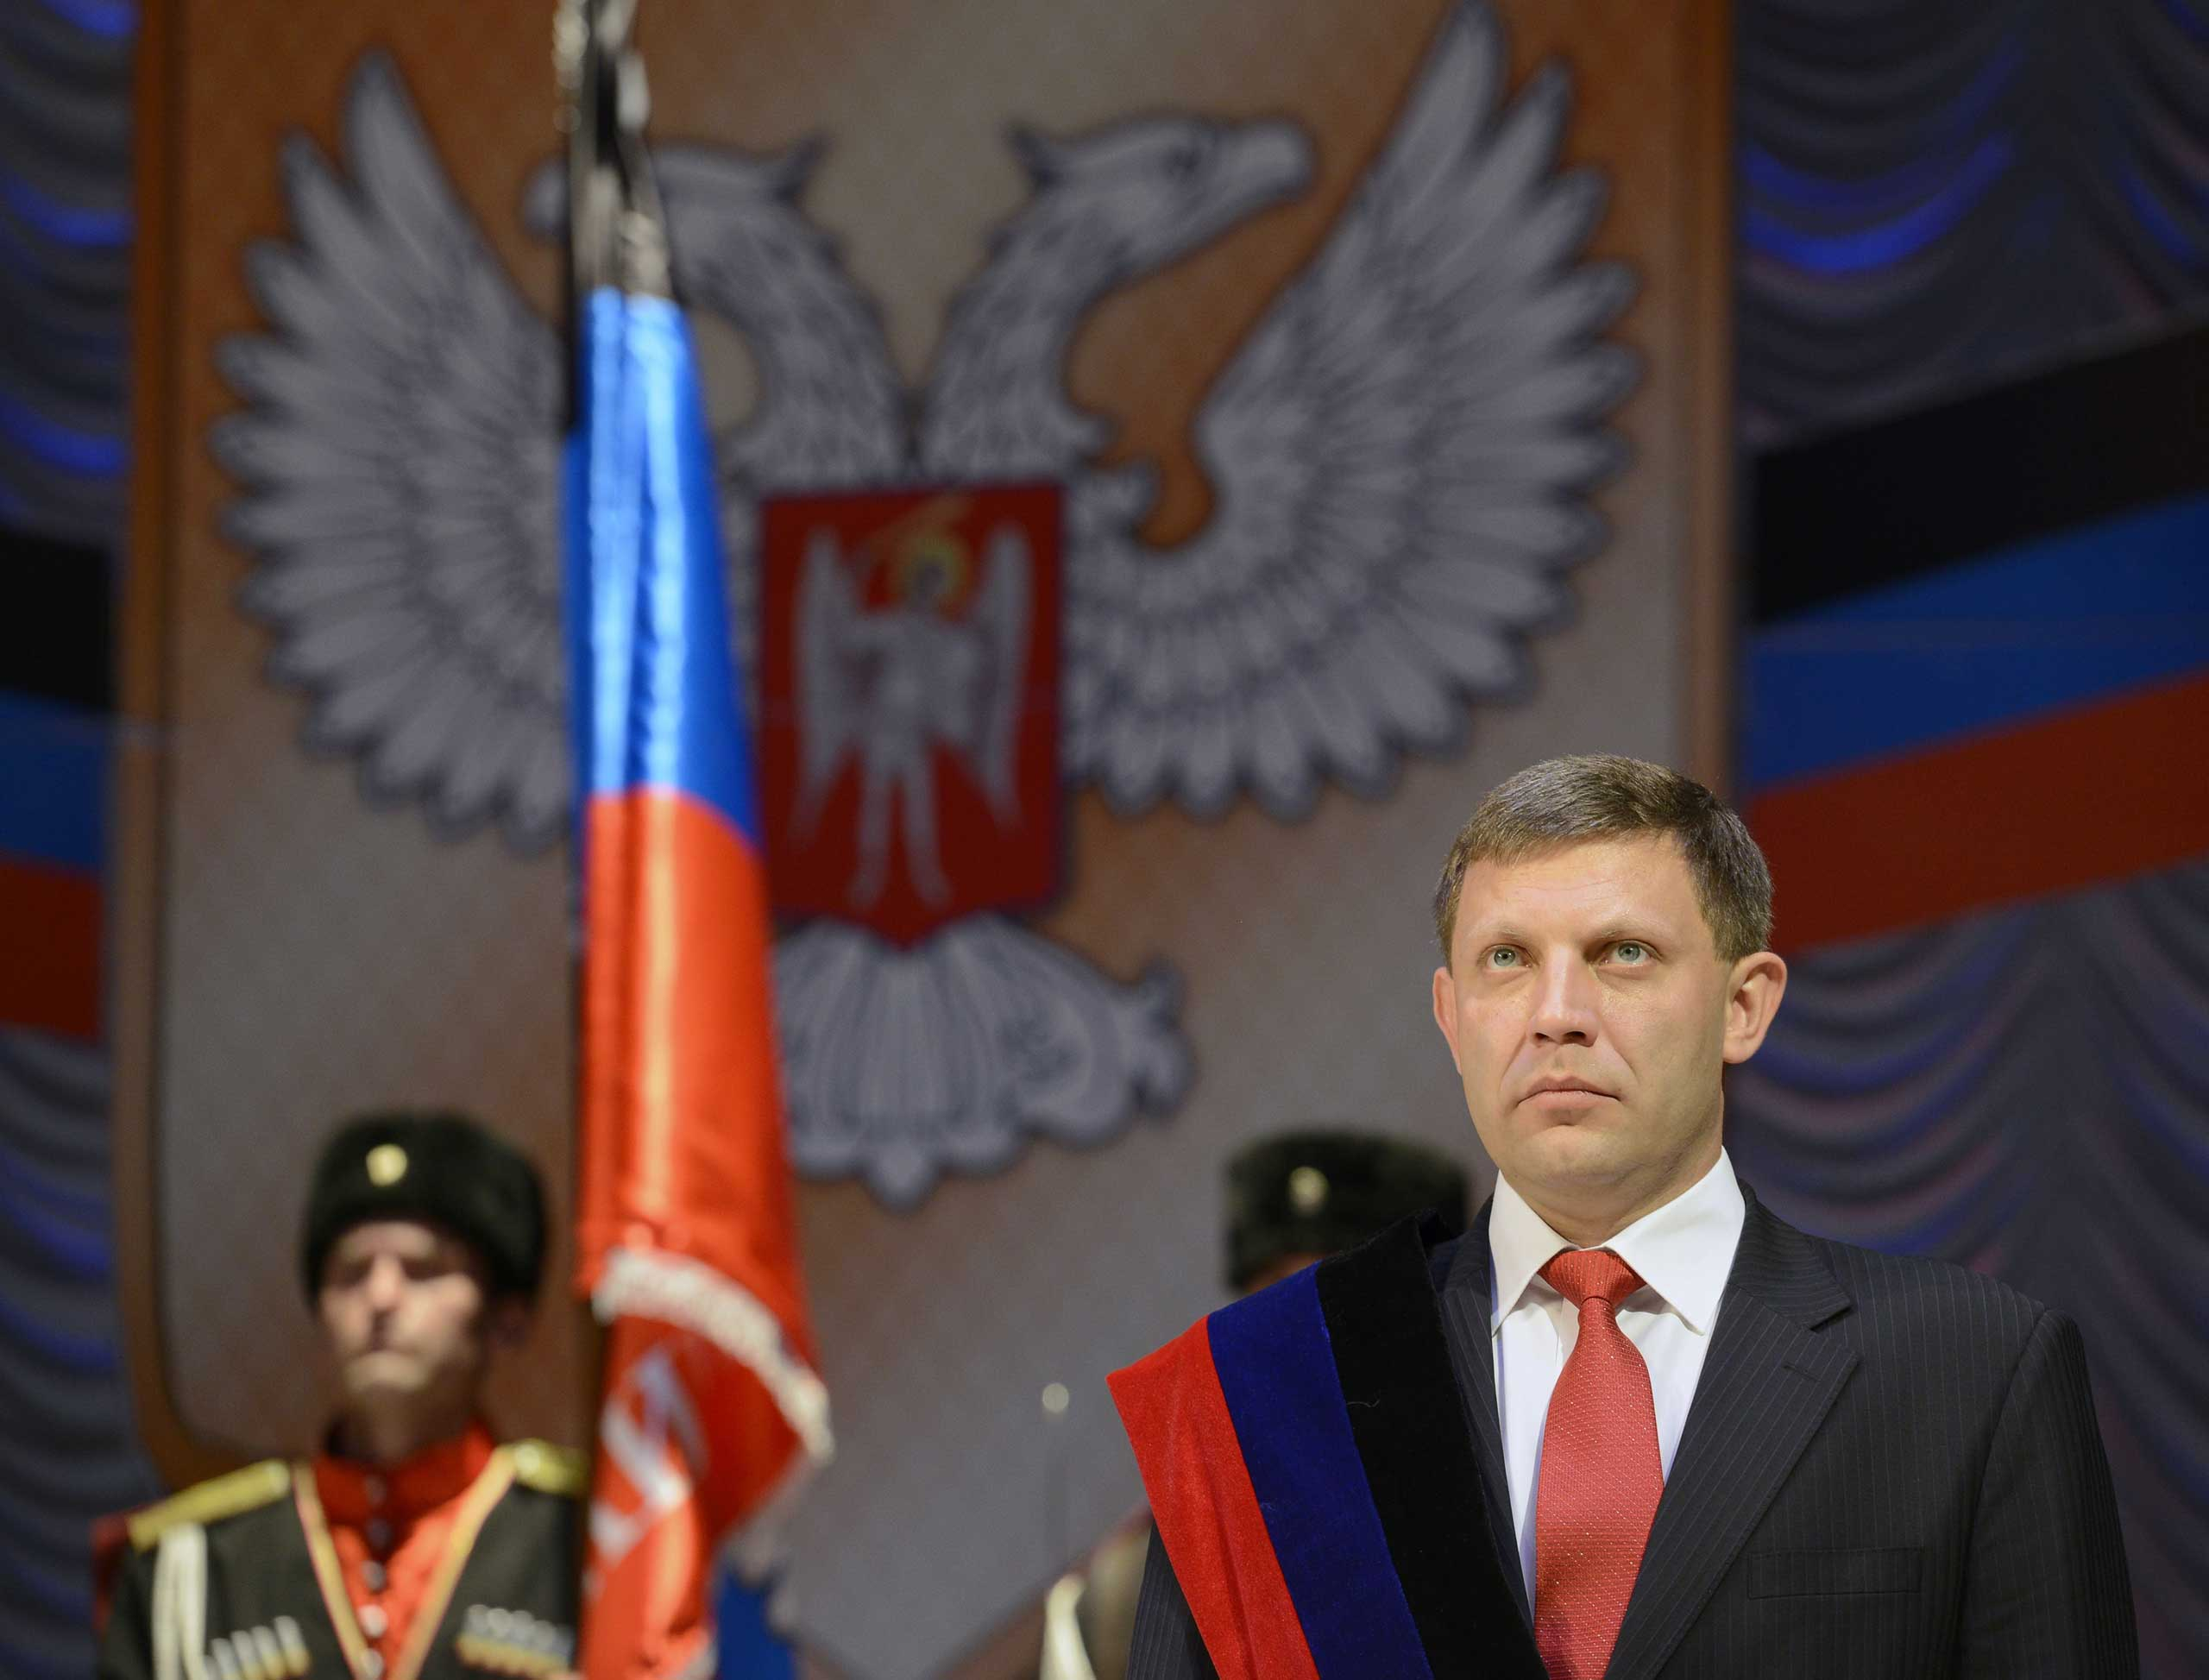 The newly elected leader of the self-proclaimed Donetsk People's Republic, Alexander Zakharchenko,  takes the oath on Nov. 4, 2014, during an inauguration ceremony in the eastern Ukrainian city of Donetsk